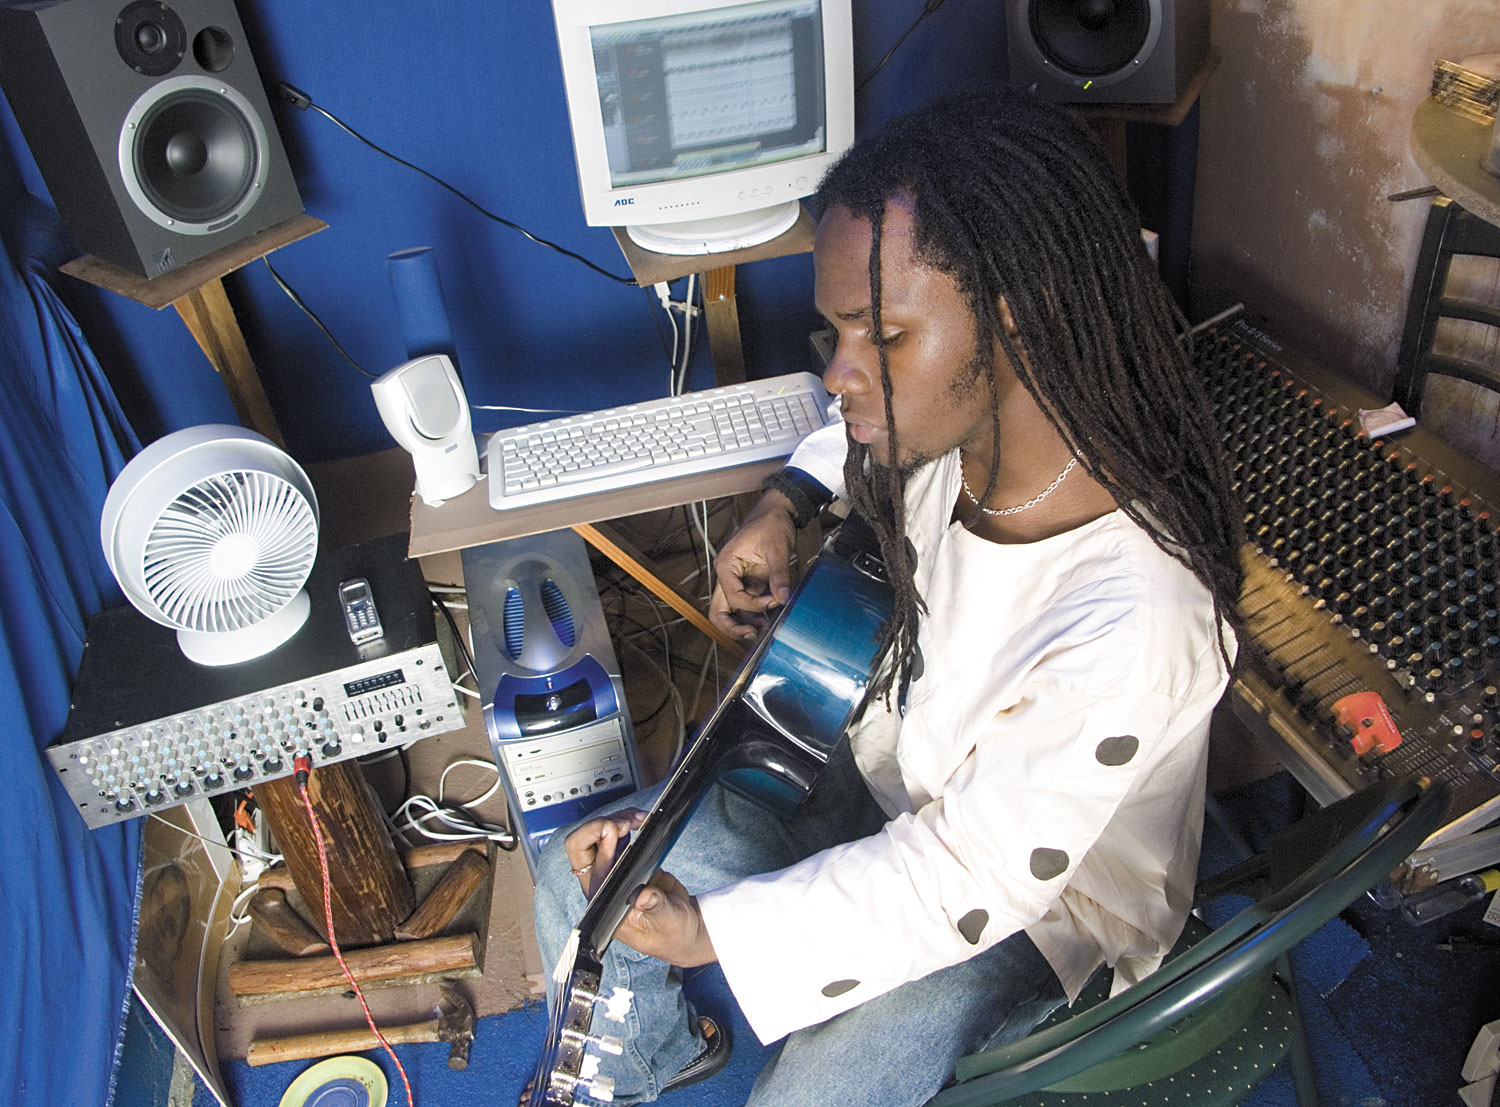 Issac Blackman in the studio at Lovers Lane. Photograph by Mark Lyndersay